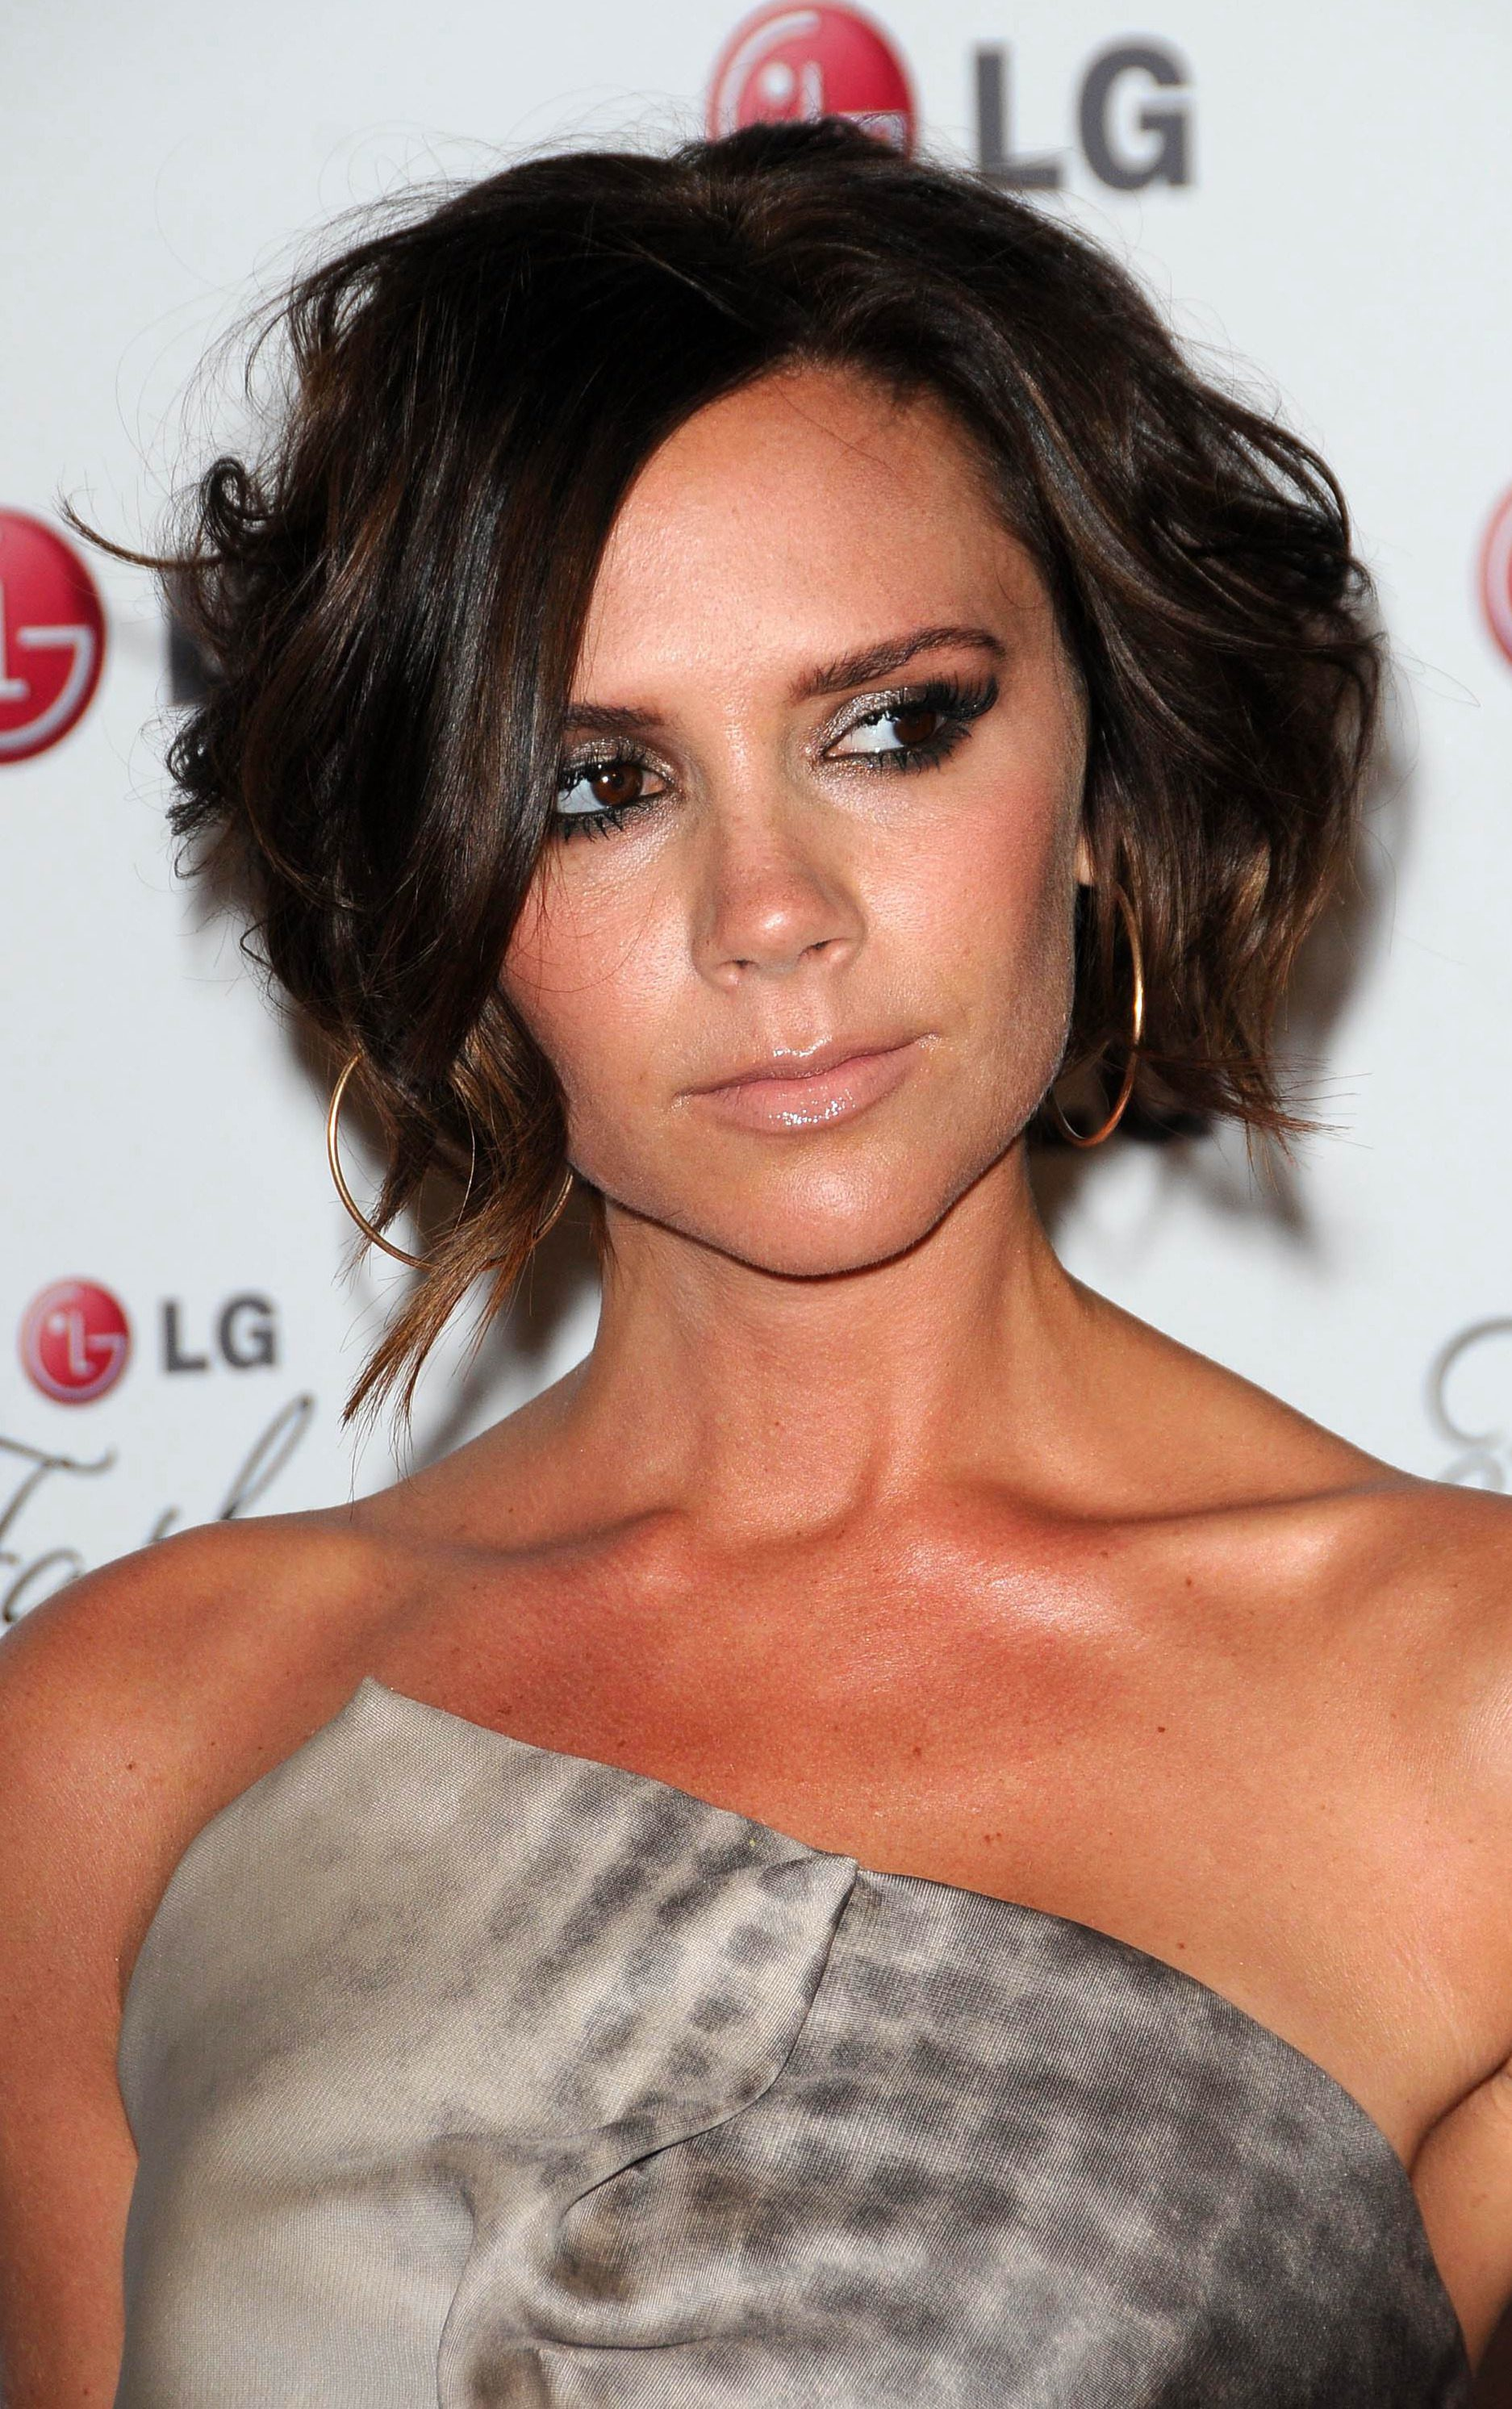 Victoria Beckham's Divided Messy Updo